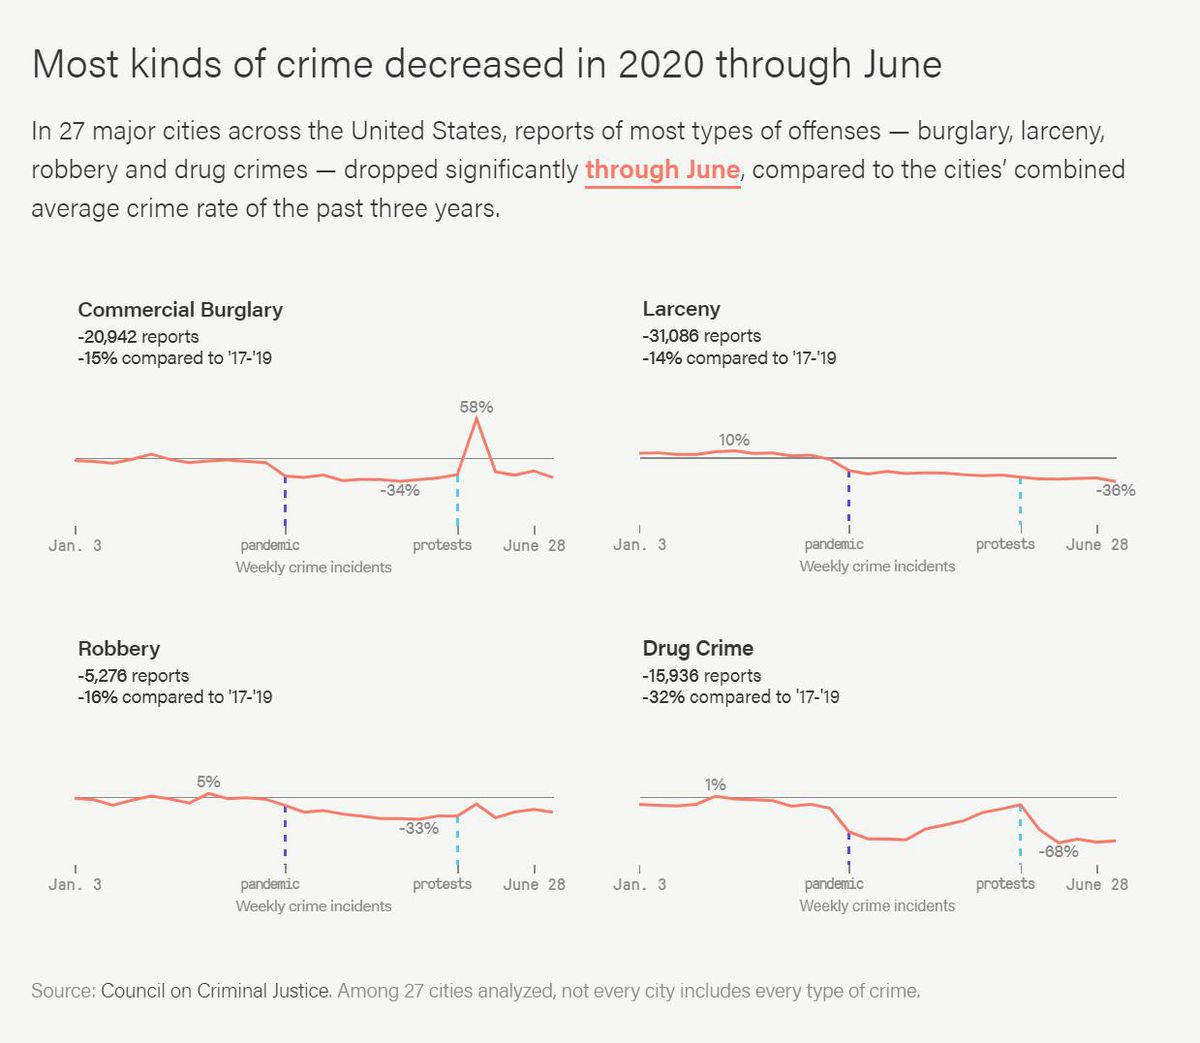 In 27 major cities across the United States, reports of most types of offenses — burglary, larceny, robbery and drug crimes — dropped significantly, compared to the cities' combined average crime rate of the past three years.